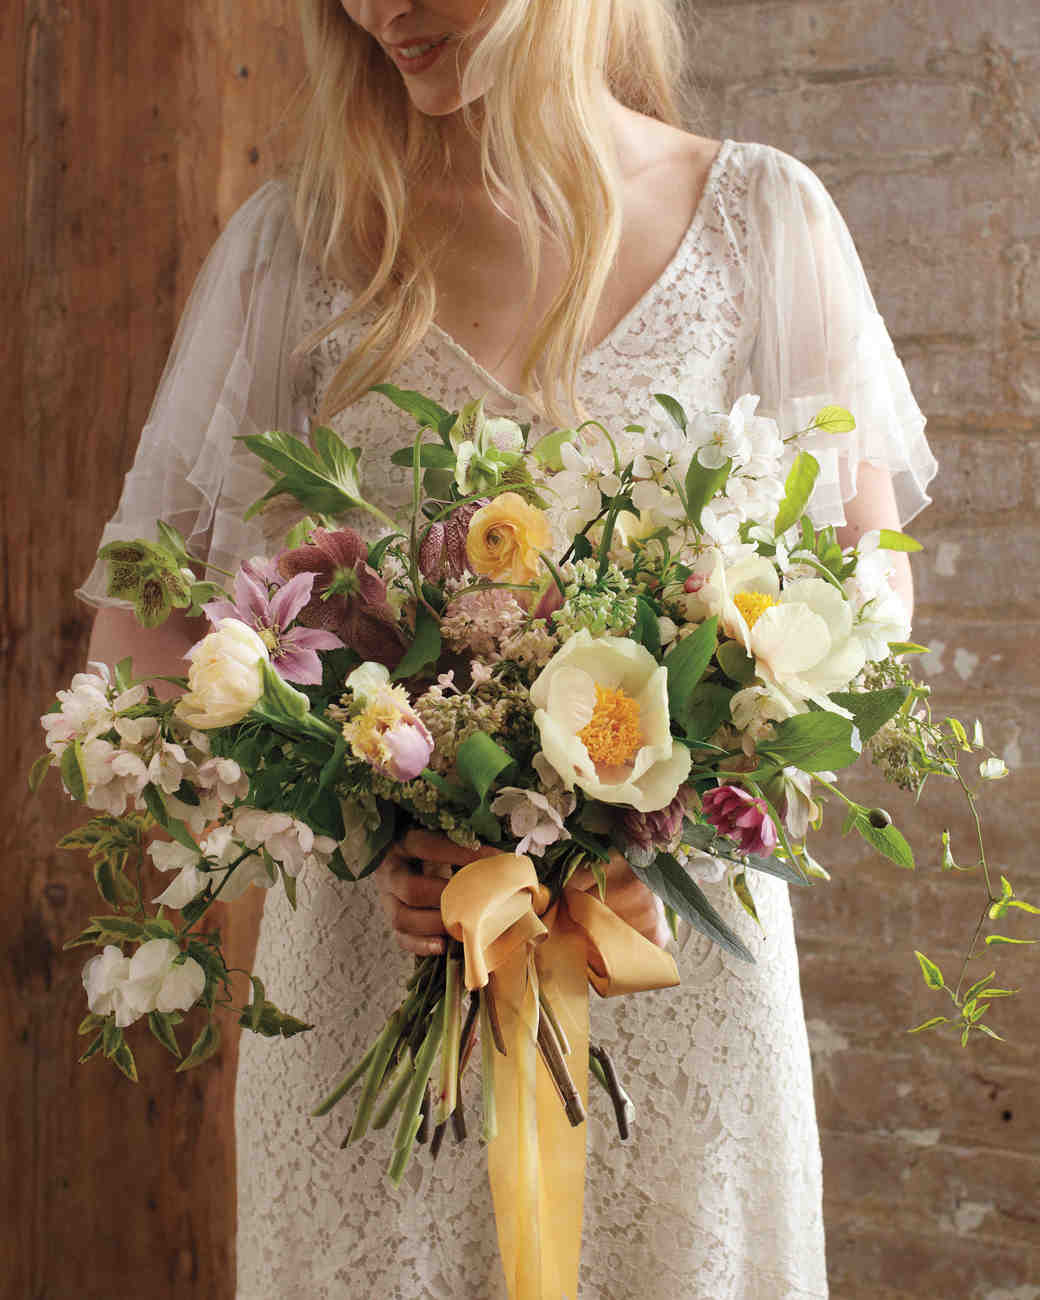 Wedding Flowers: Spring Wedding Flower Ideas From The Industry's Best